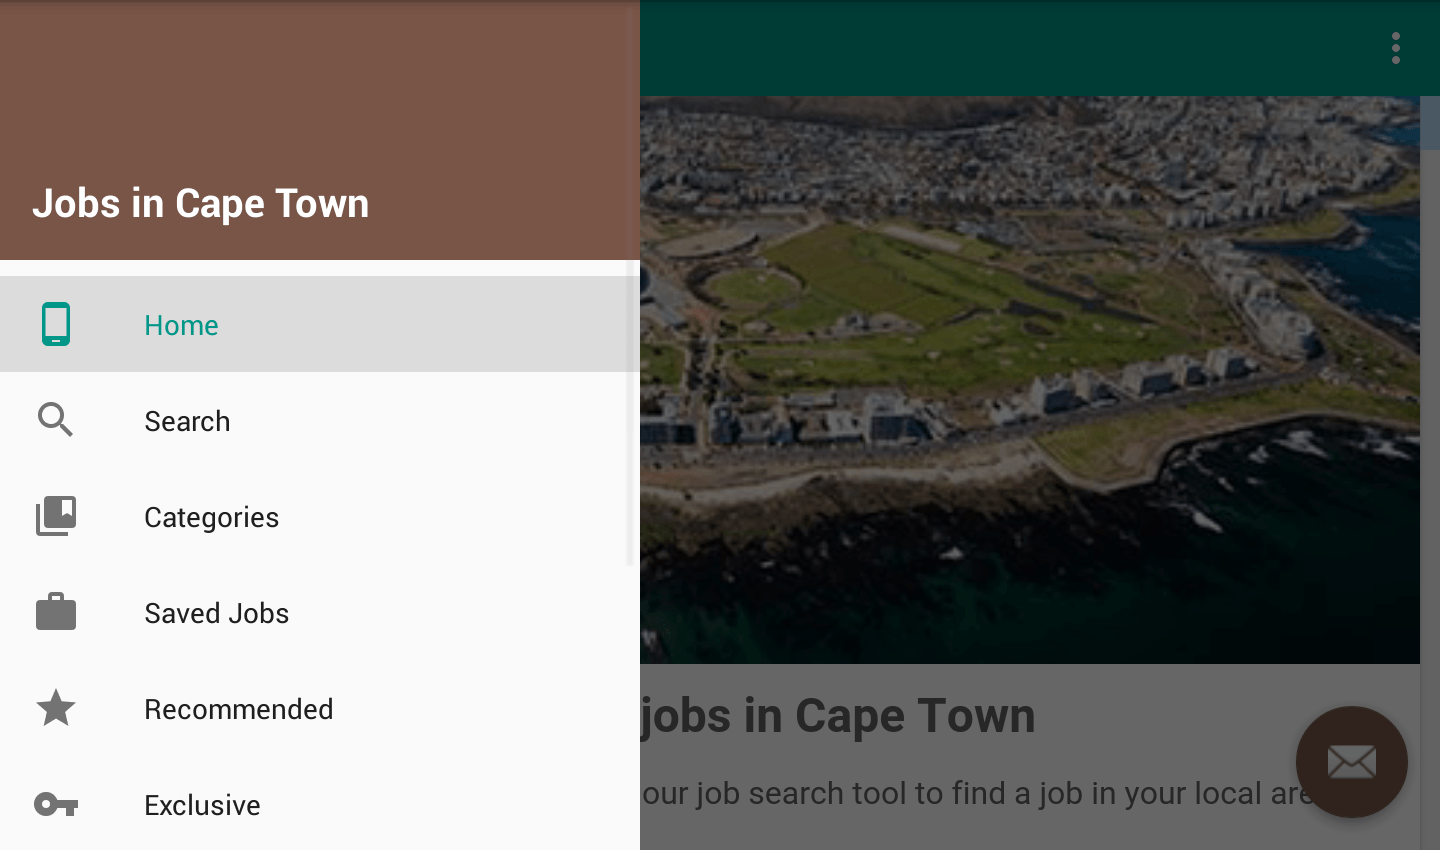 Search for the latest Cape Town jobs on Careerjet, the employment search engine. Covers all industry sectors. Job Seekers Partners Advertisers Job search > Cape Town jobs > jobs > jobs in Cape Town. Jobs in Cape Town. Recent searches. Cape Town 25 km Locations. South Africa. Western Cape Cape Town. Distance. within 25 km Contract type Any.